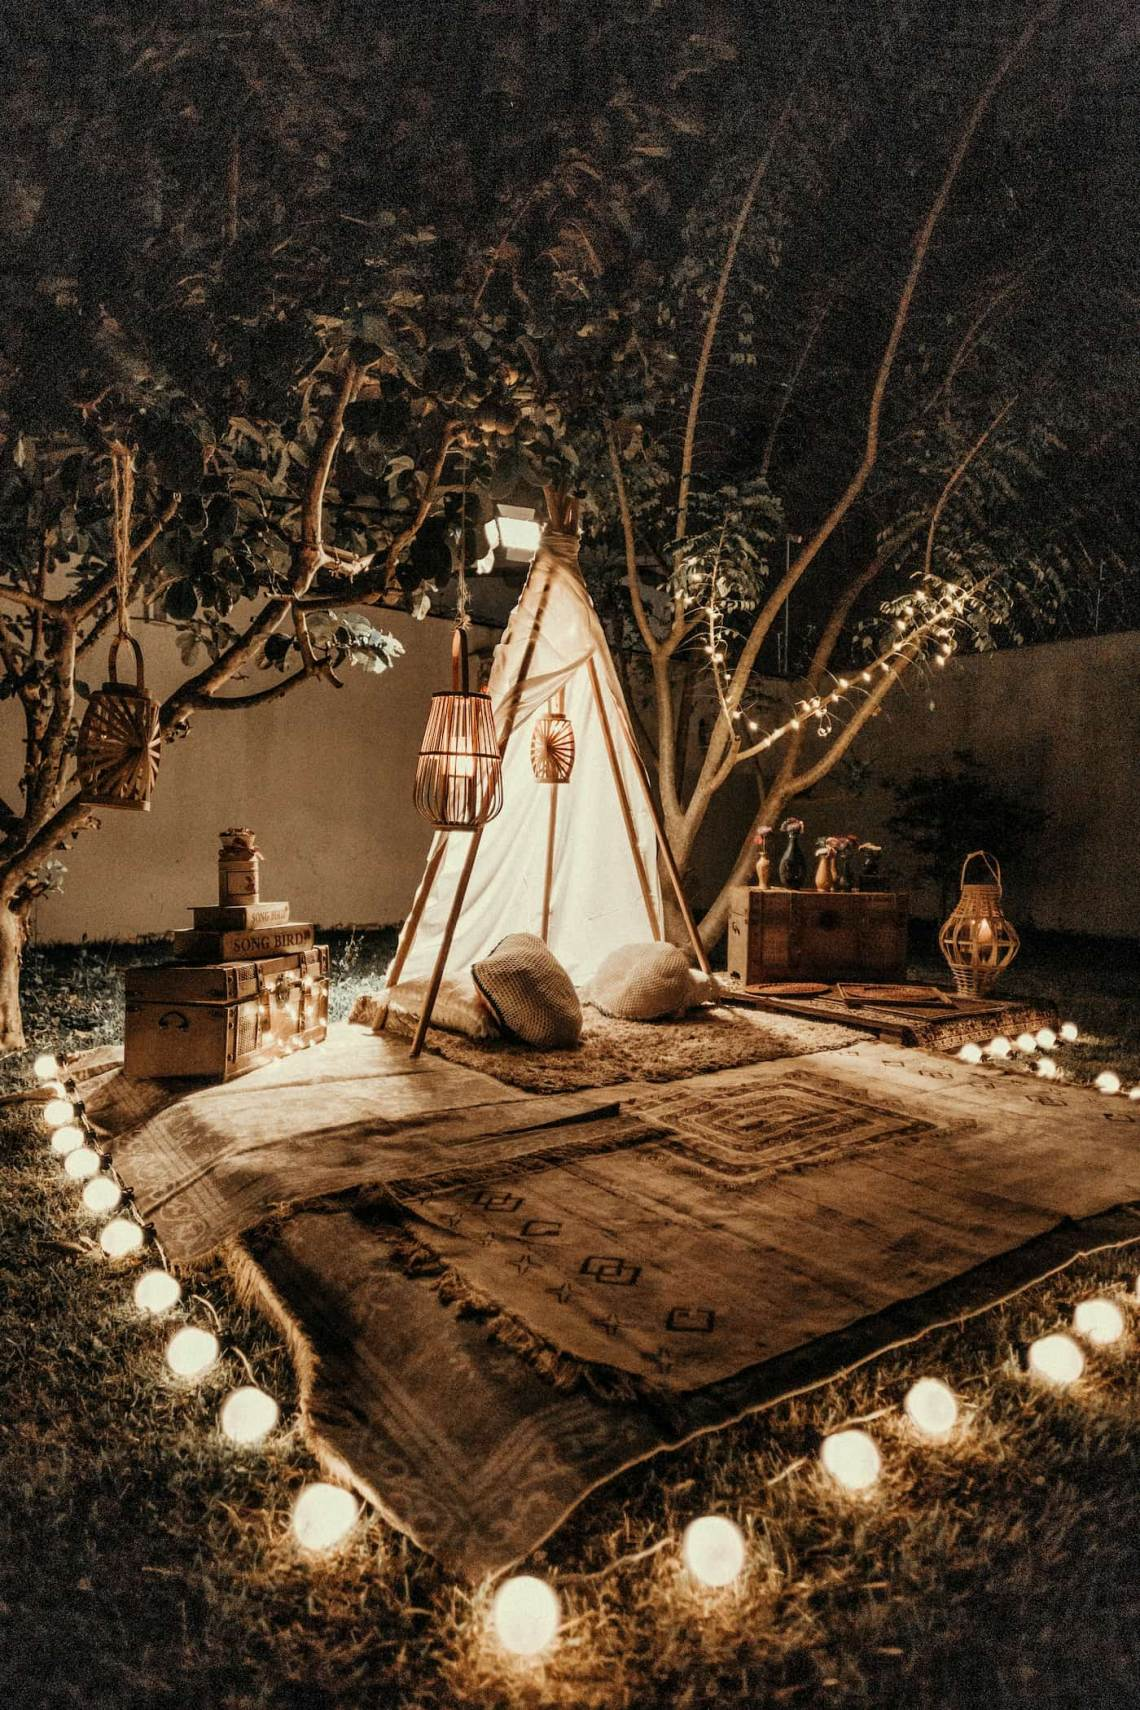 Glamping site setup in a backyard with lanterns and rugs.